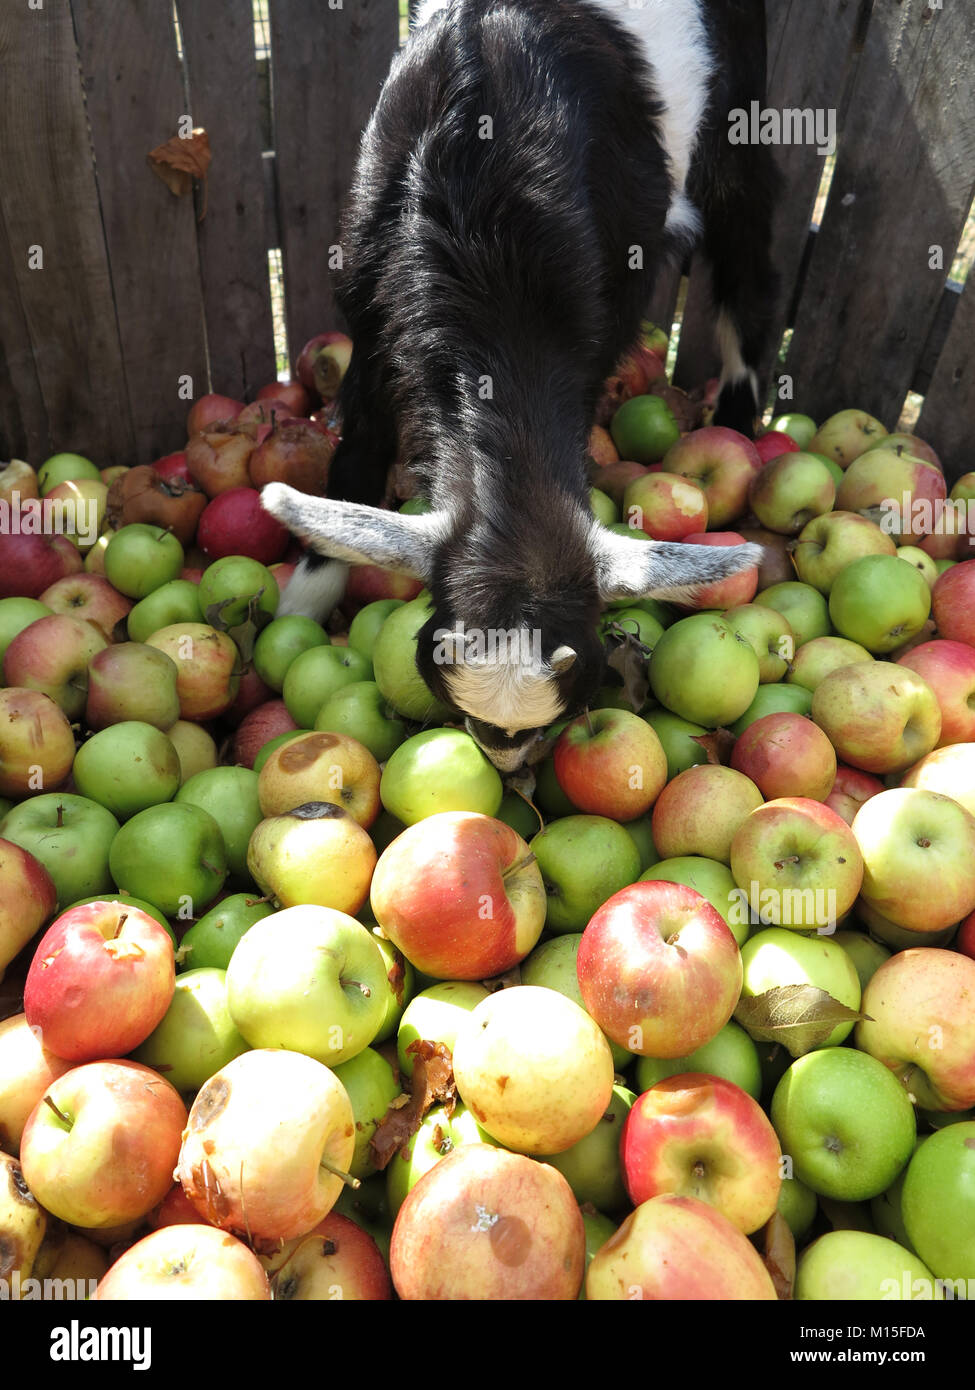 Pigmy Goats Searching for the Perfect Apple - Stock Image